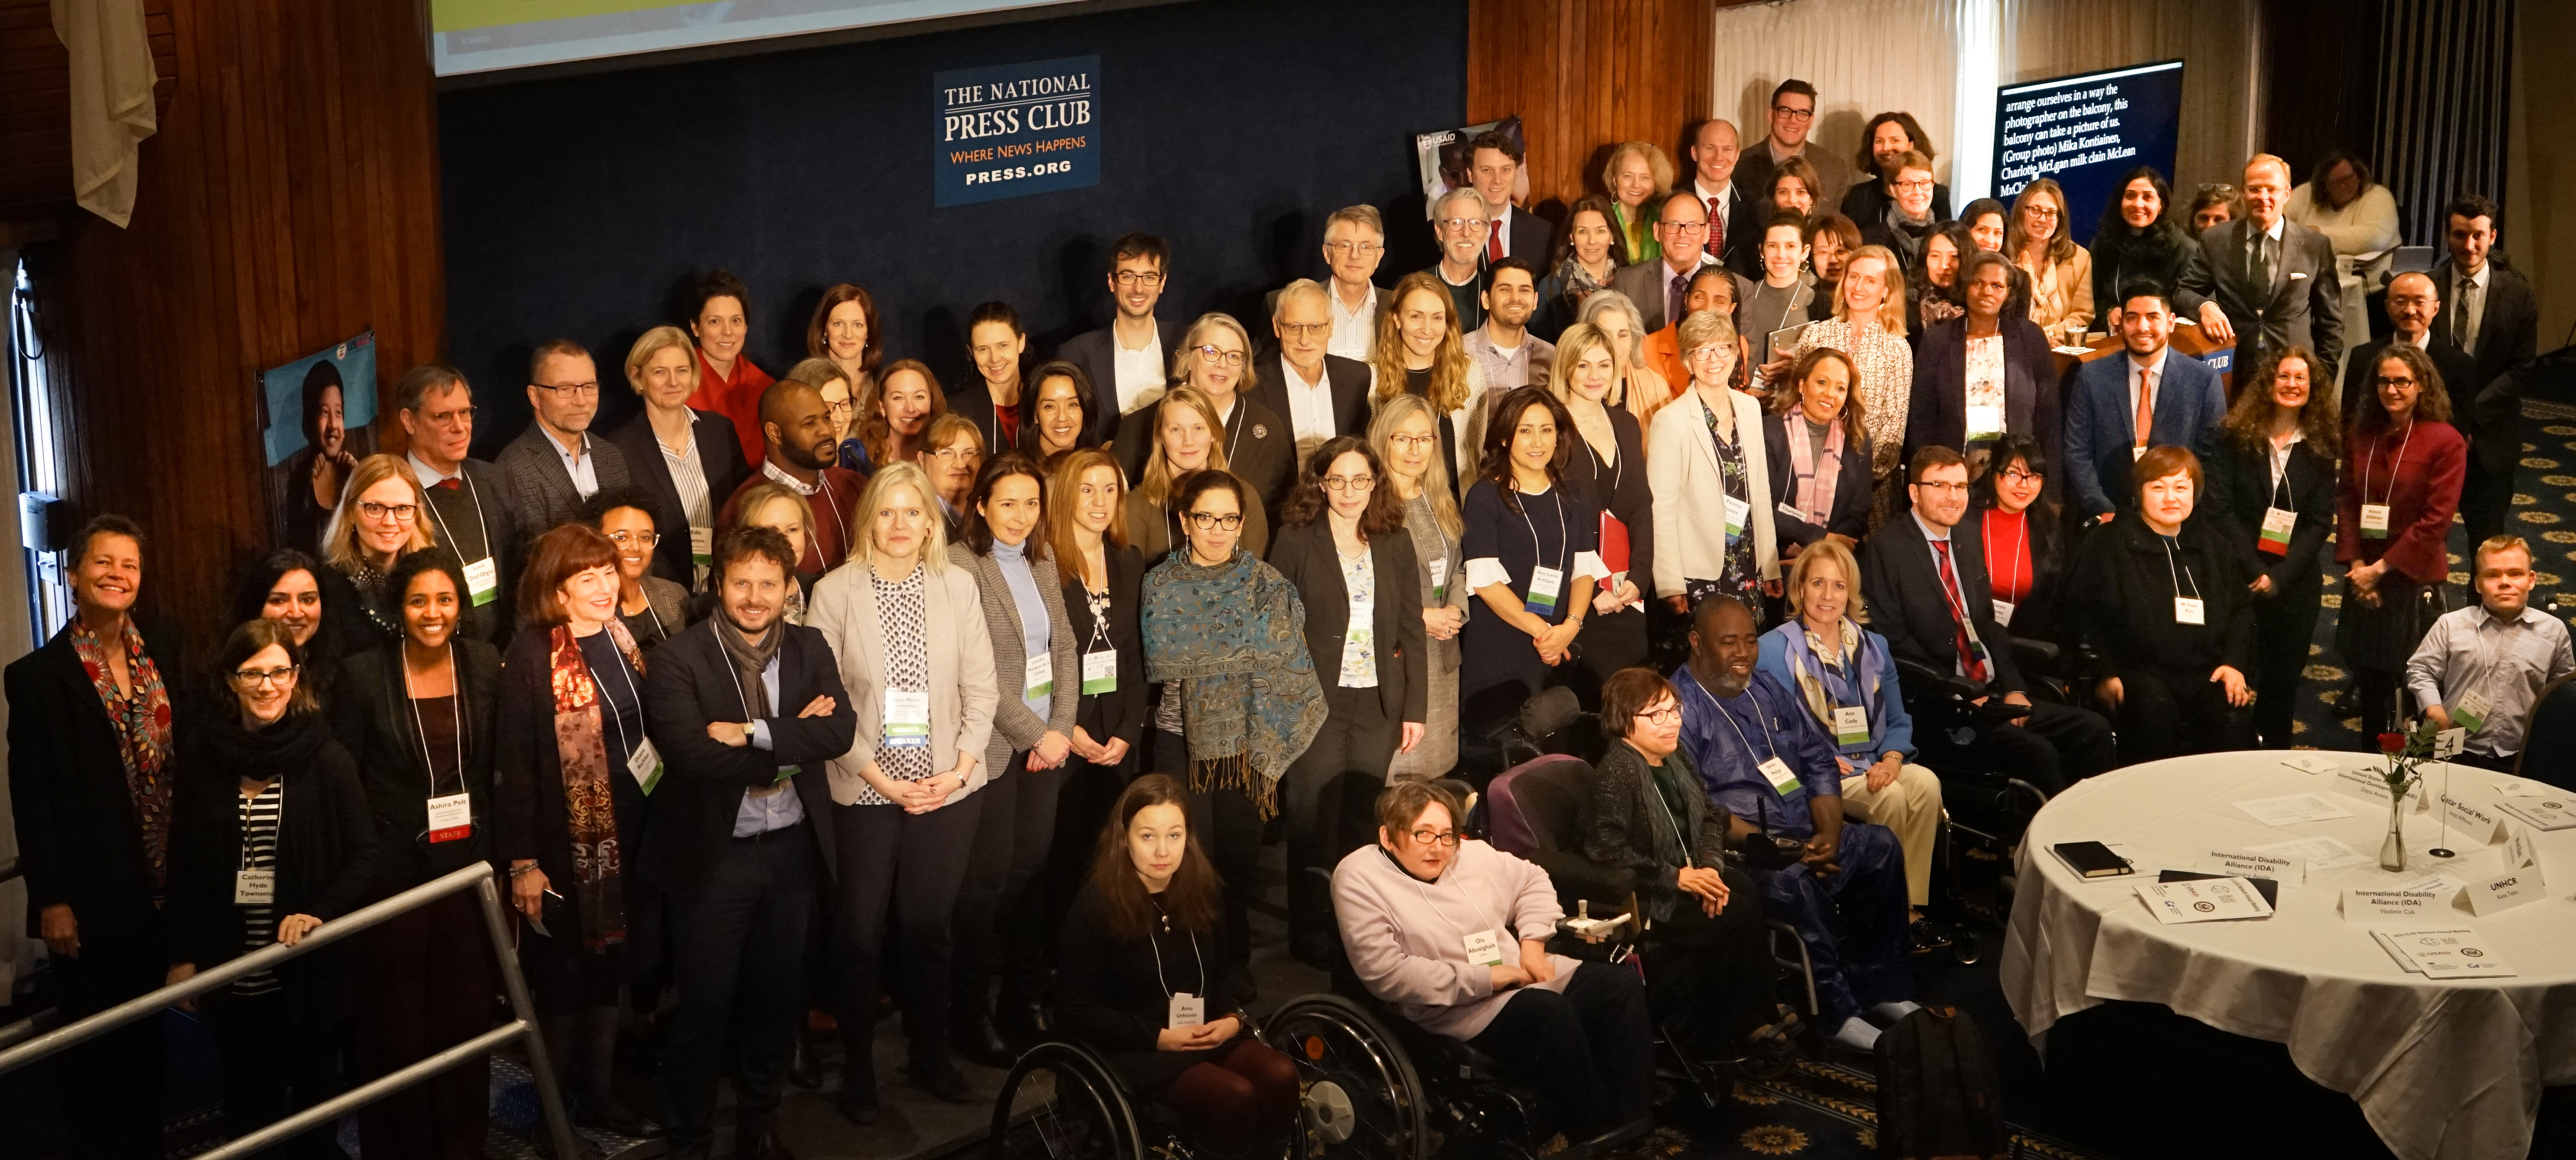 Group photo at the GLAD network event in February 2020